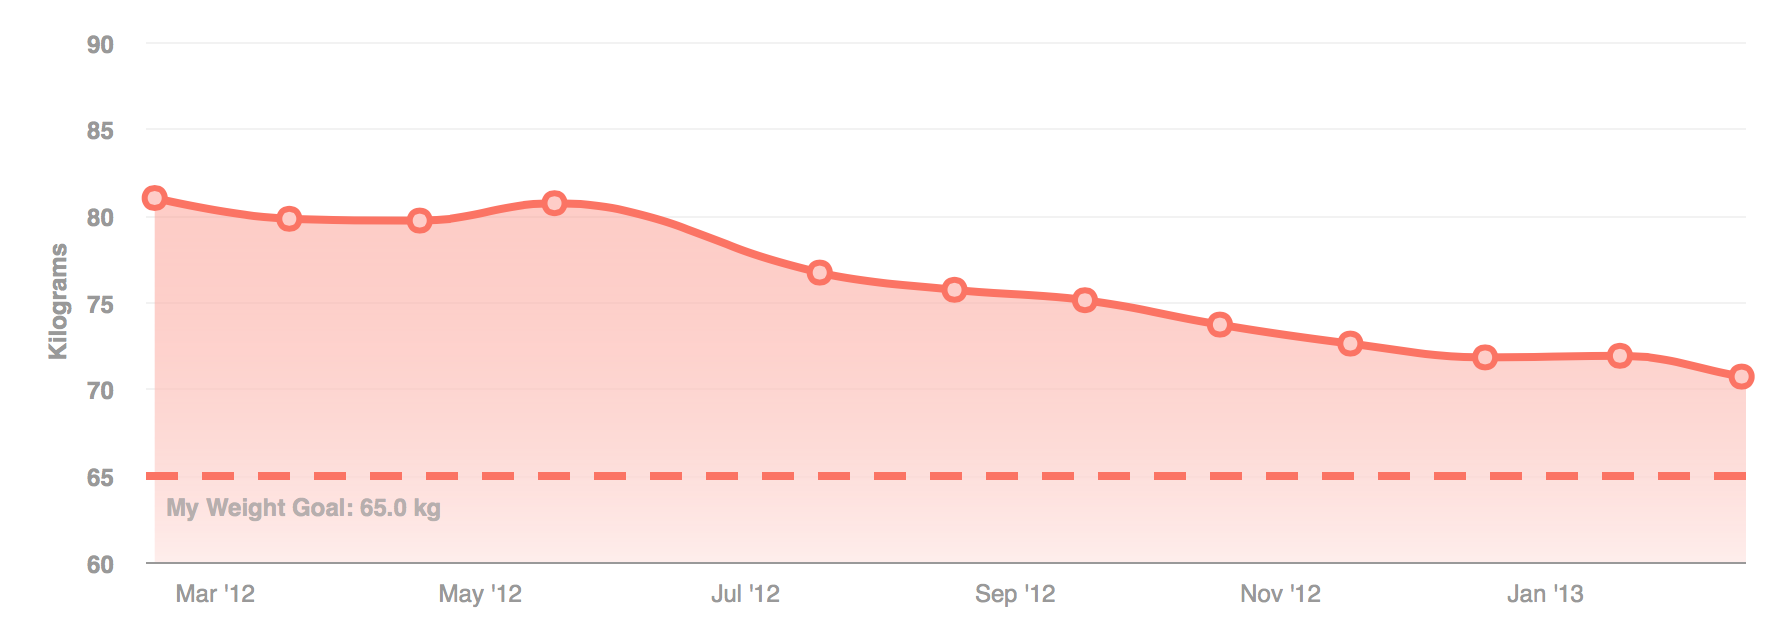 Weight loss over 1 year with Fitbit